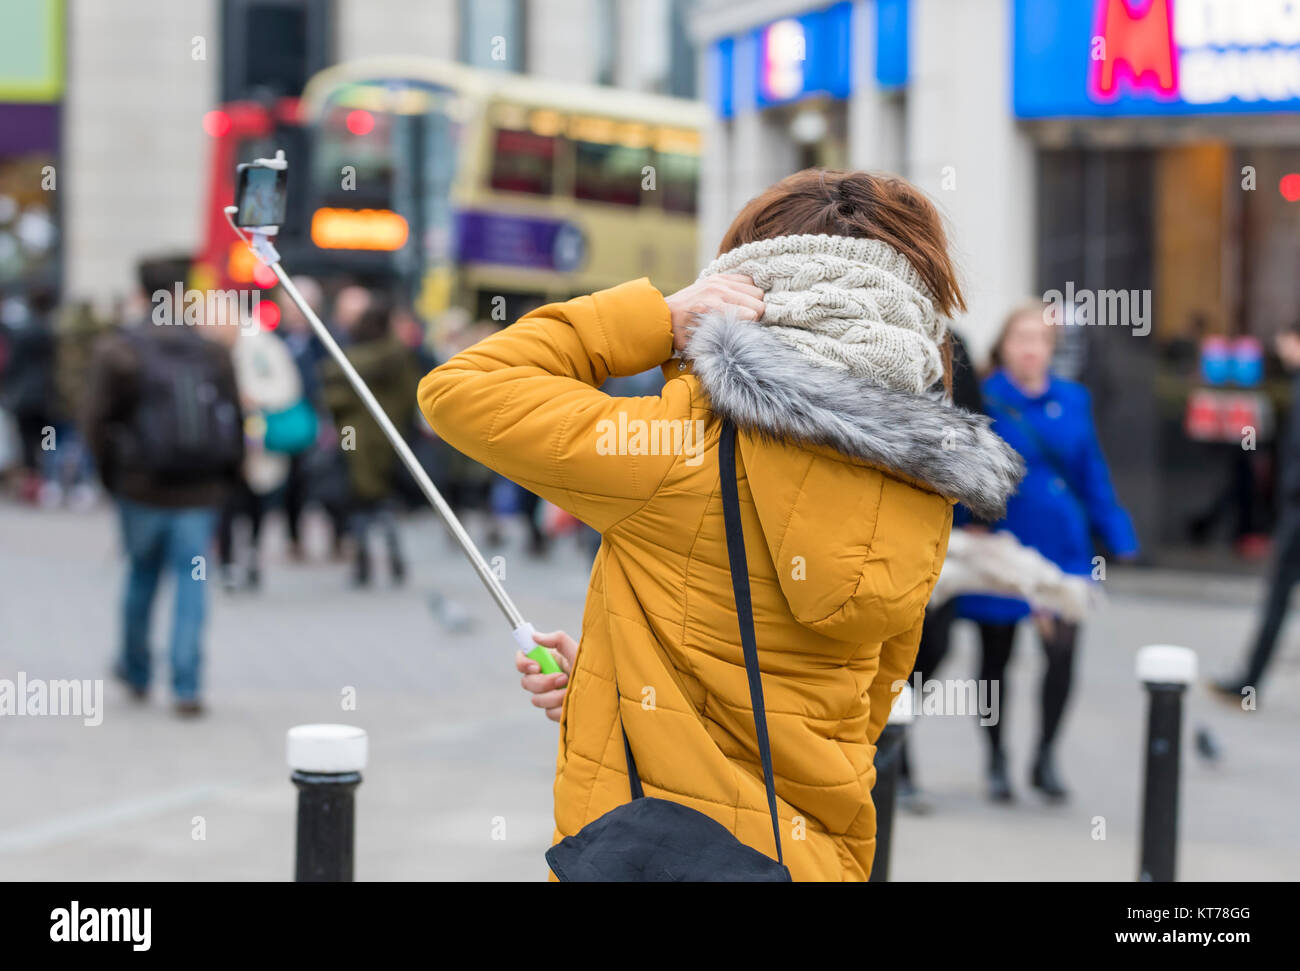 Tourist taking selfies with a selfie stick in England, UK. - Stock Image